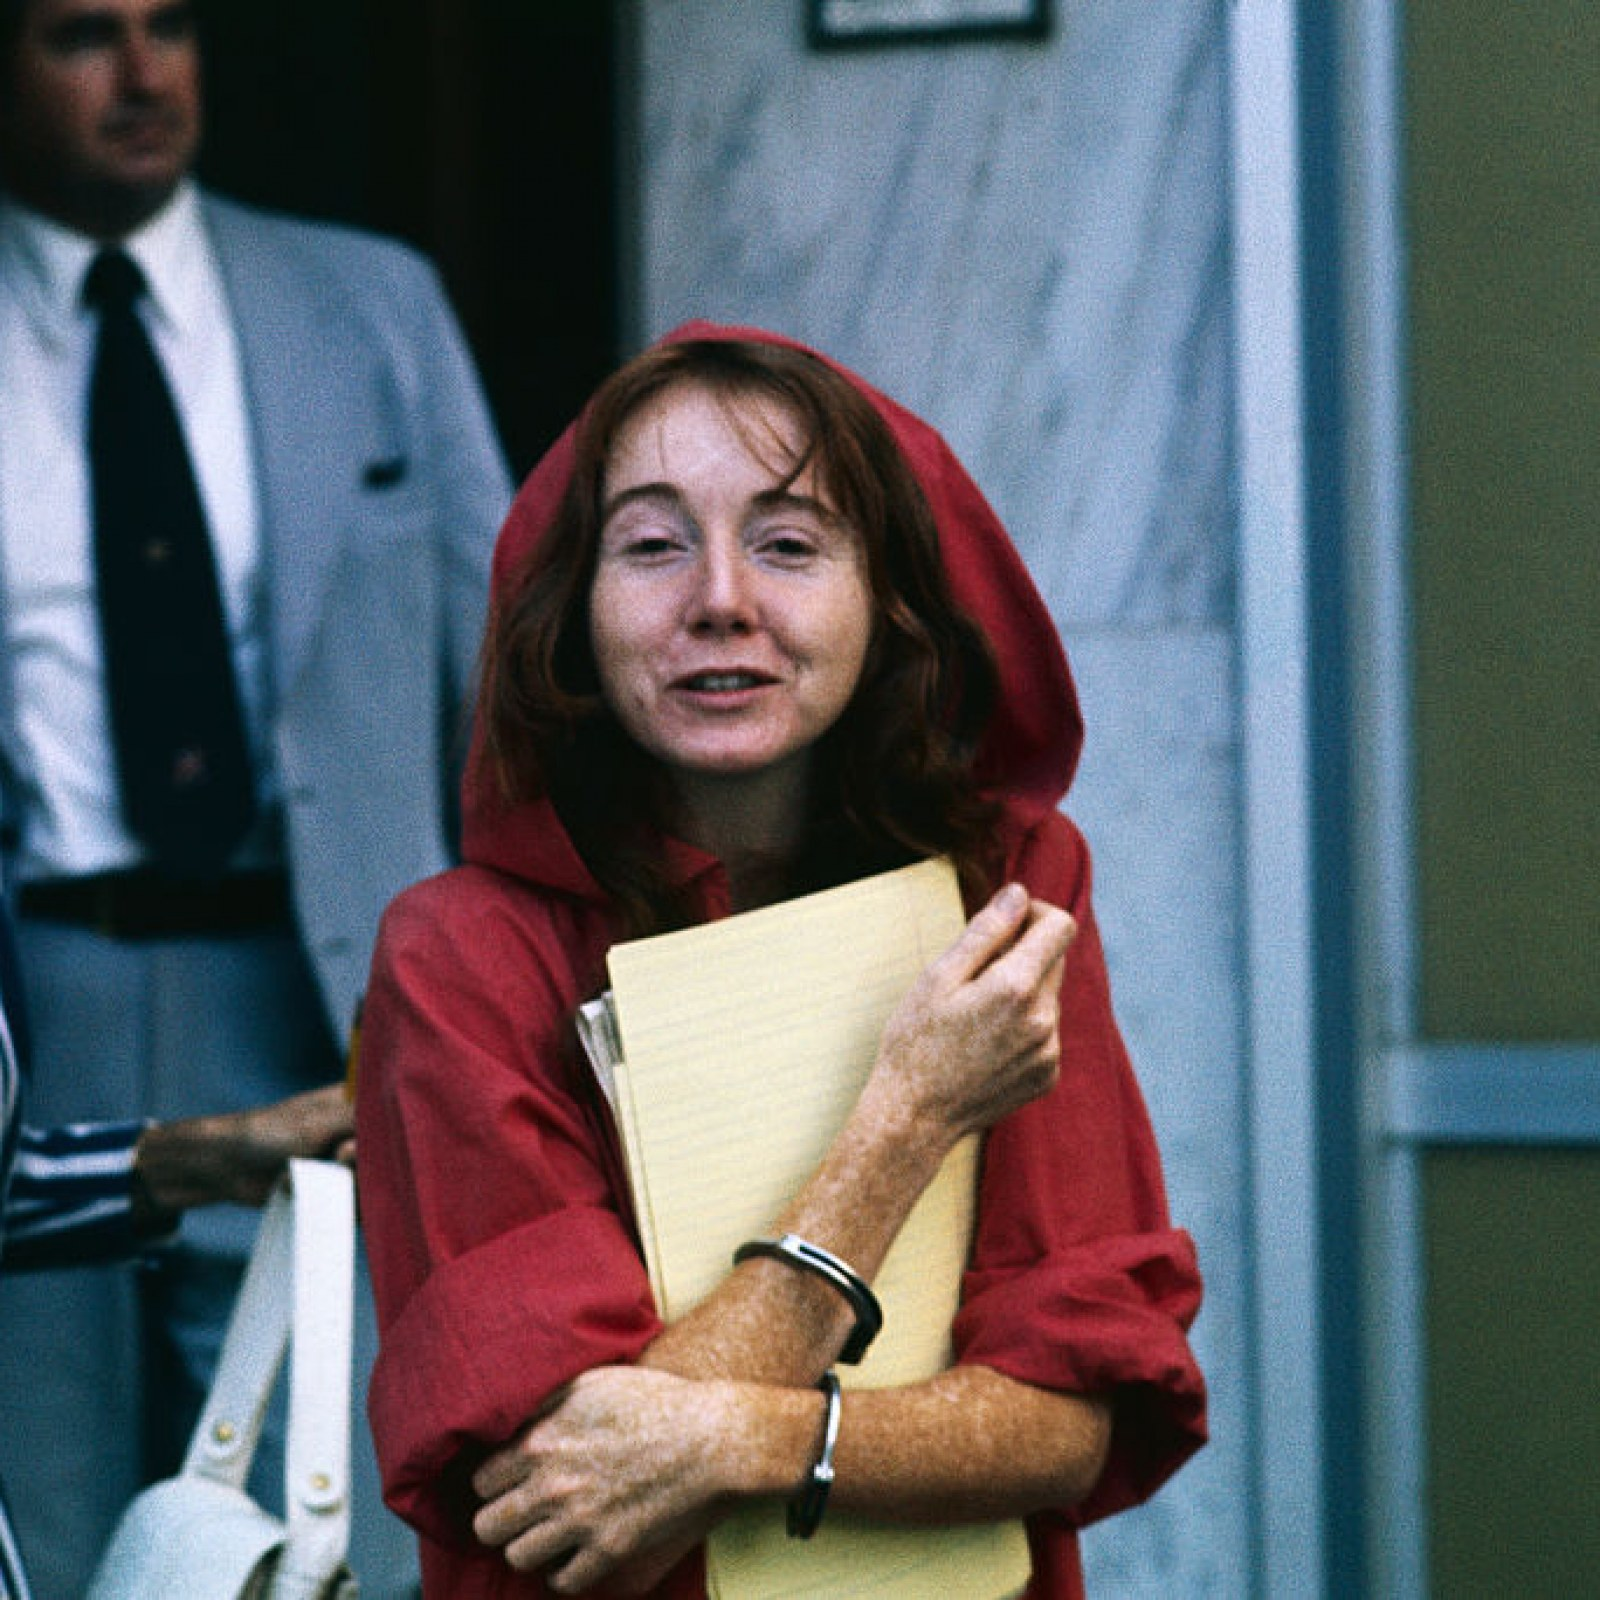 Where Are Charles Manson's 'Family Members' Now? While Most